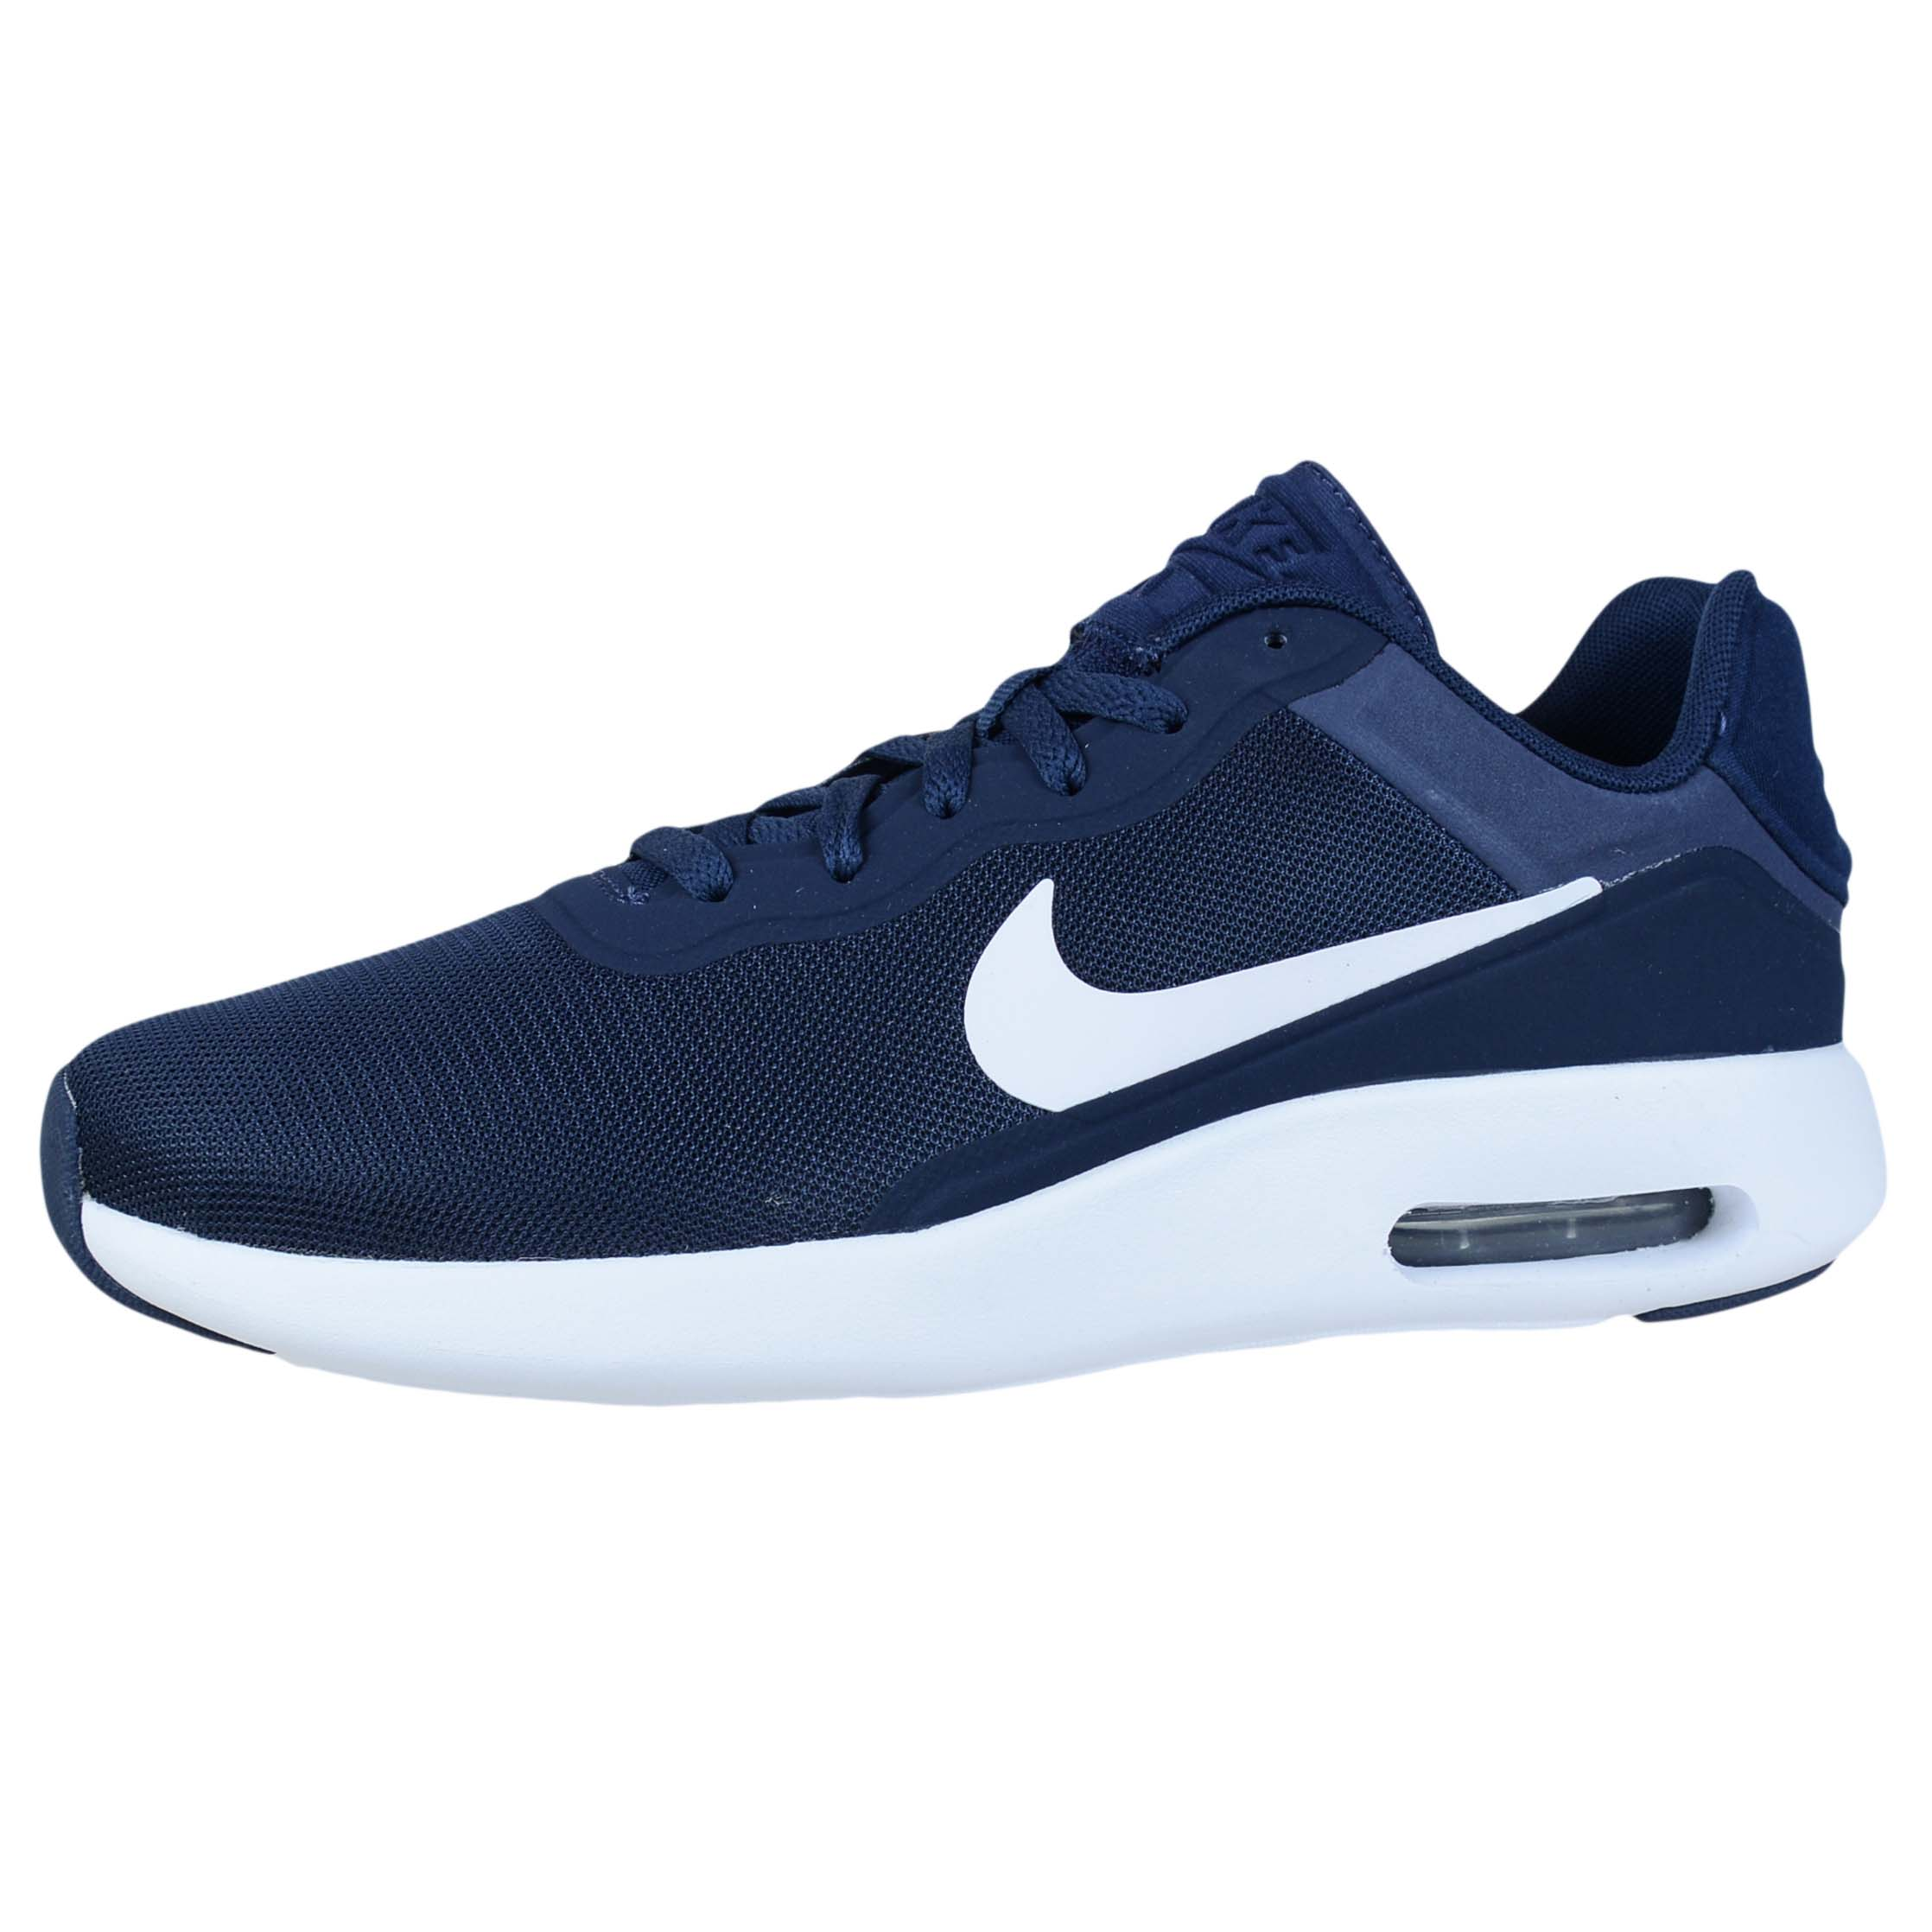 a4105ada8fc ... nike air max modern essential midnight navy white mens fashion shoe  844874 401